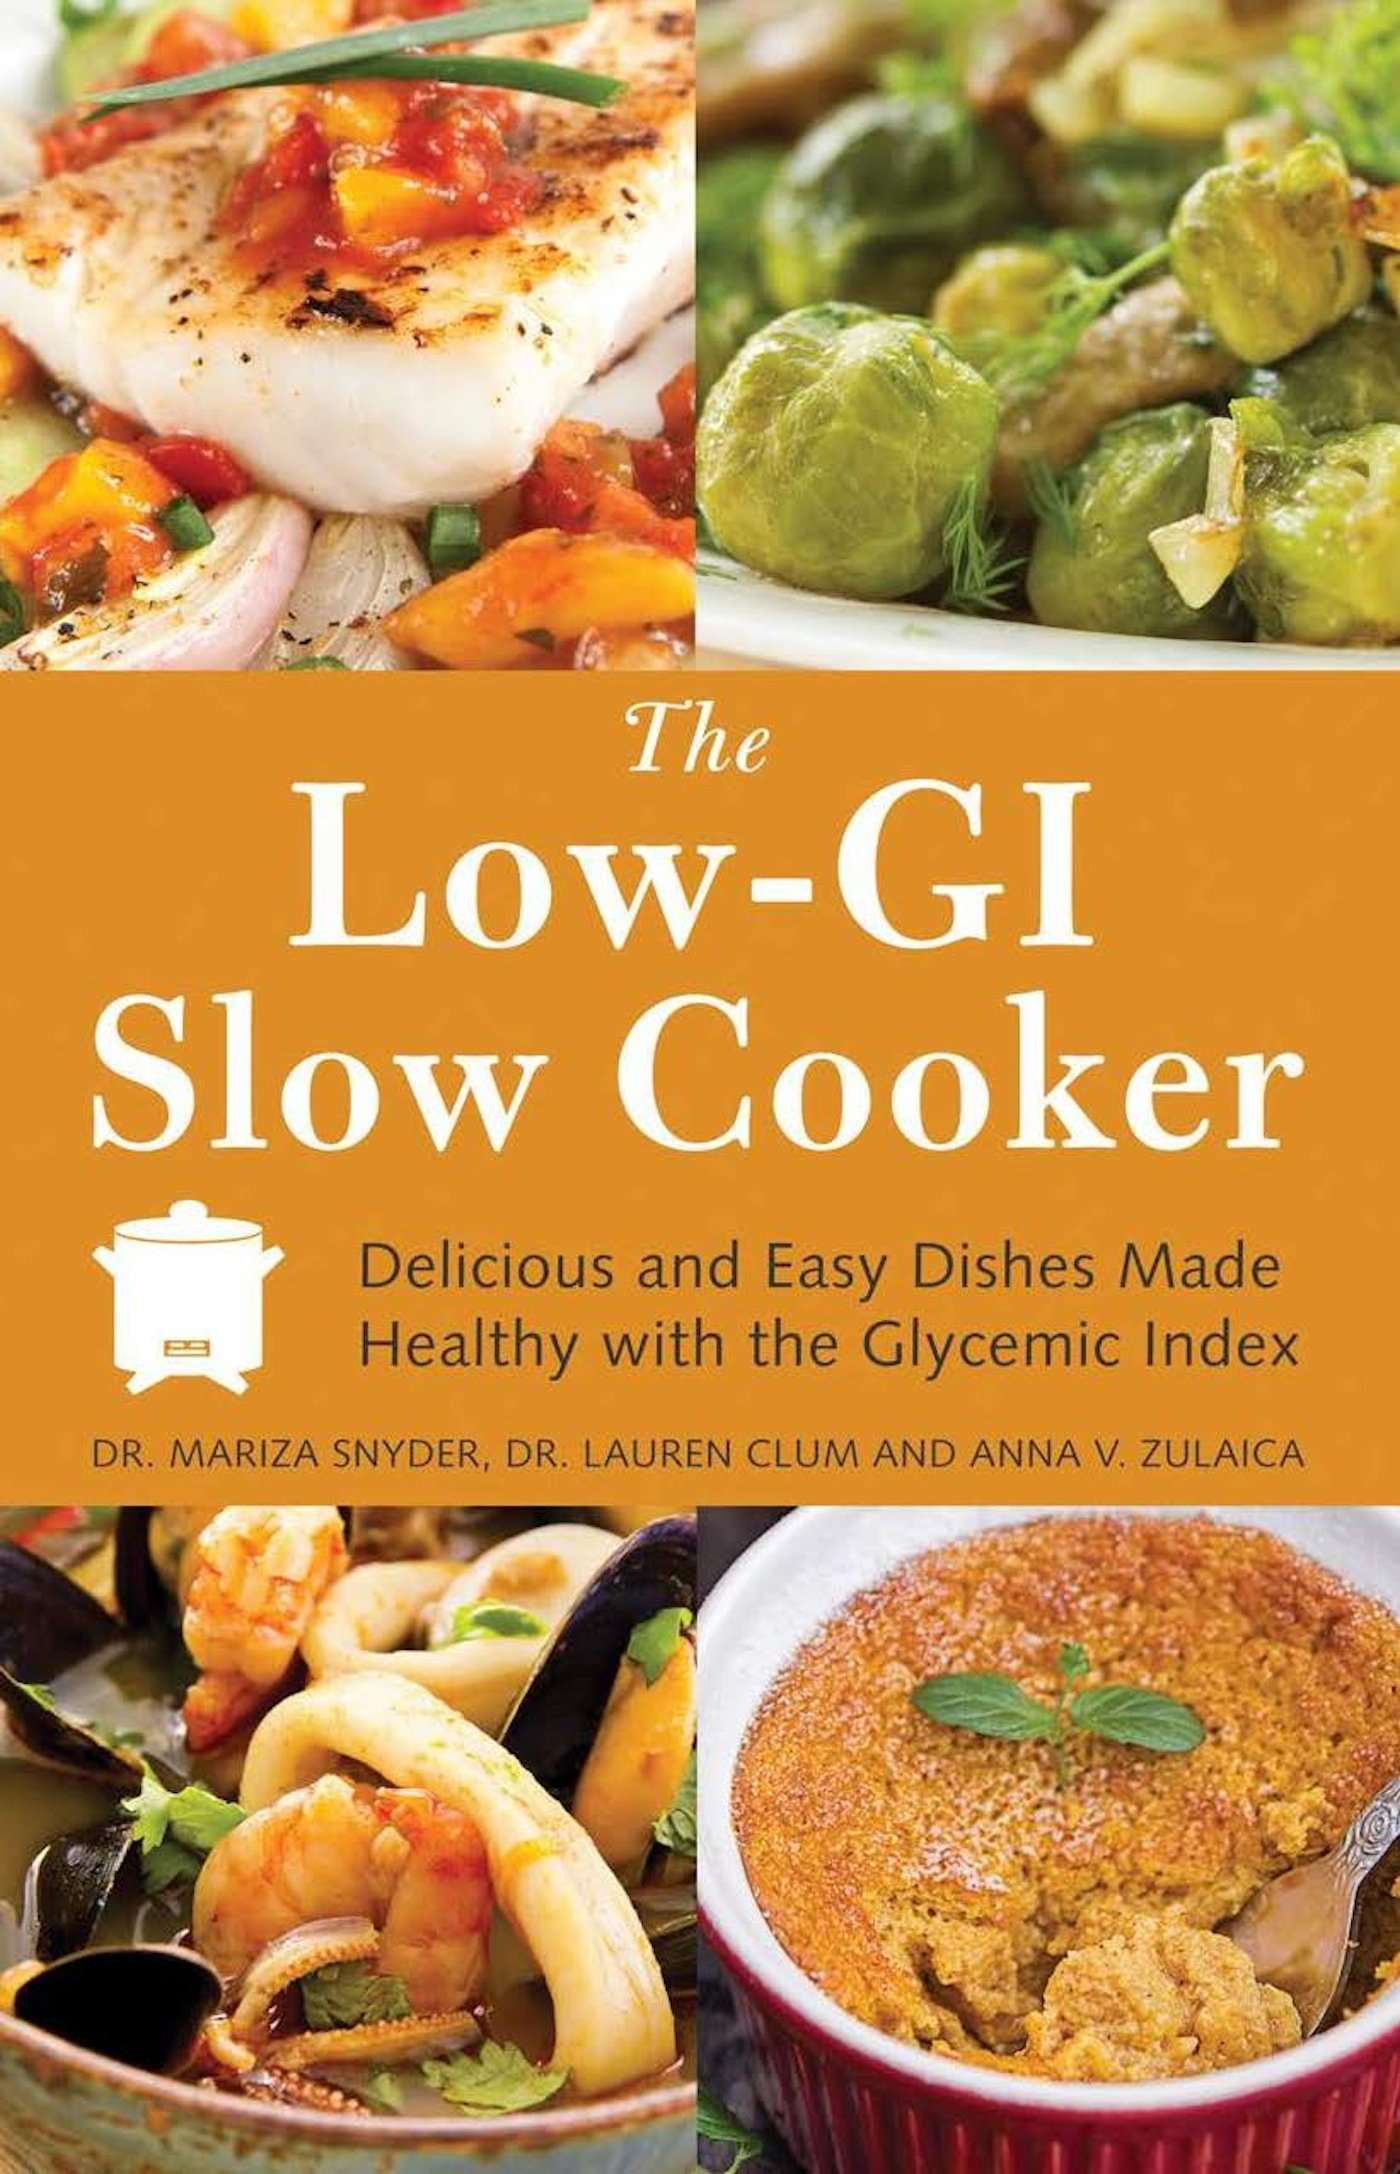 Read Online The Low GI Slow Cooker: Delicious and Easy Dishes Made Healthy with the Glycemic Index PDF